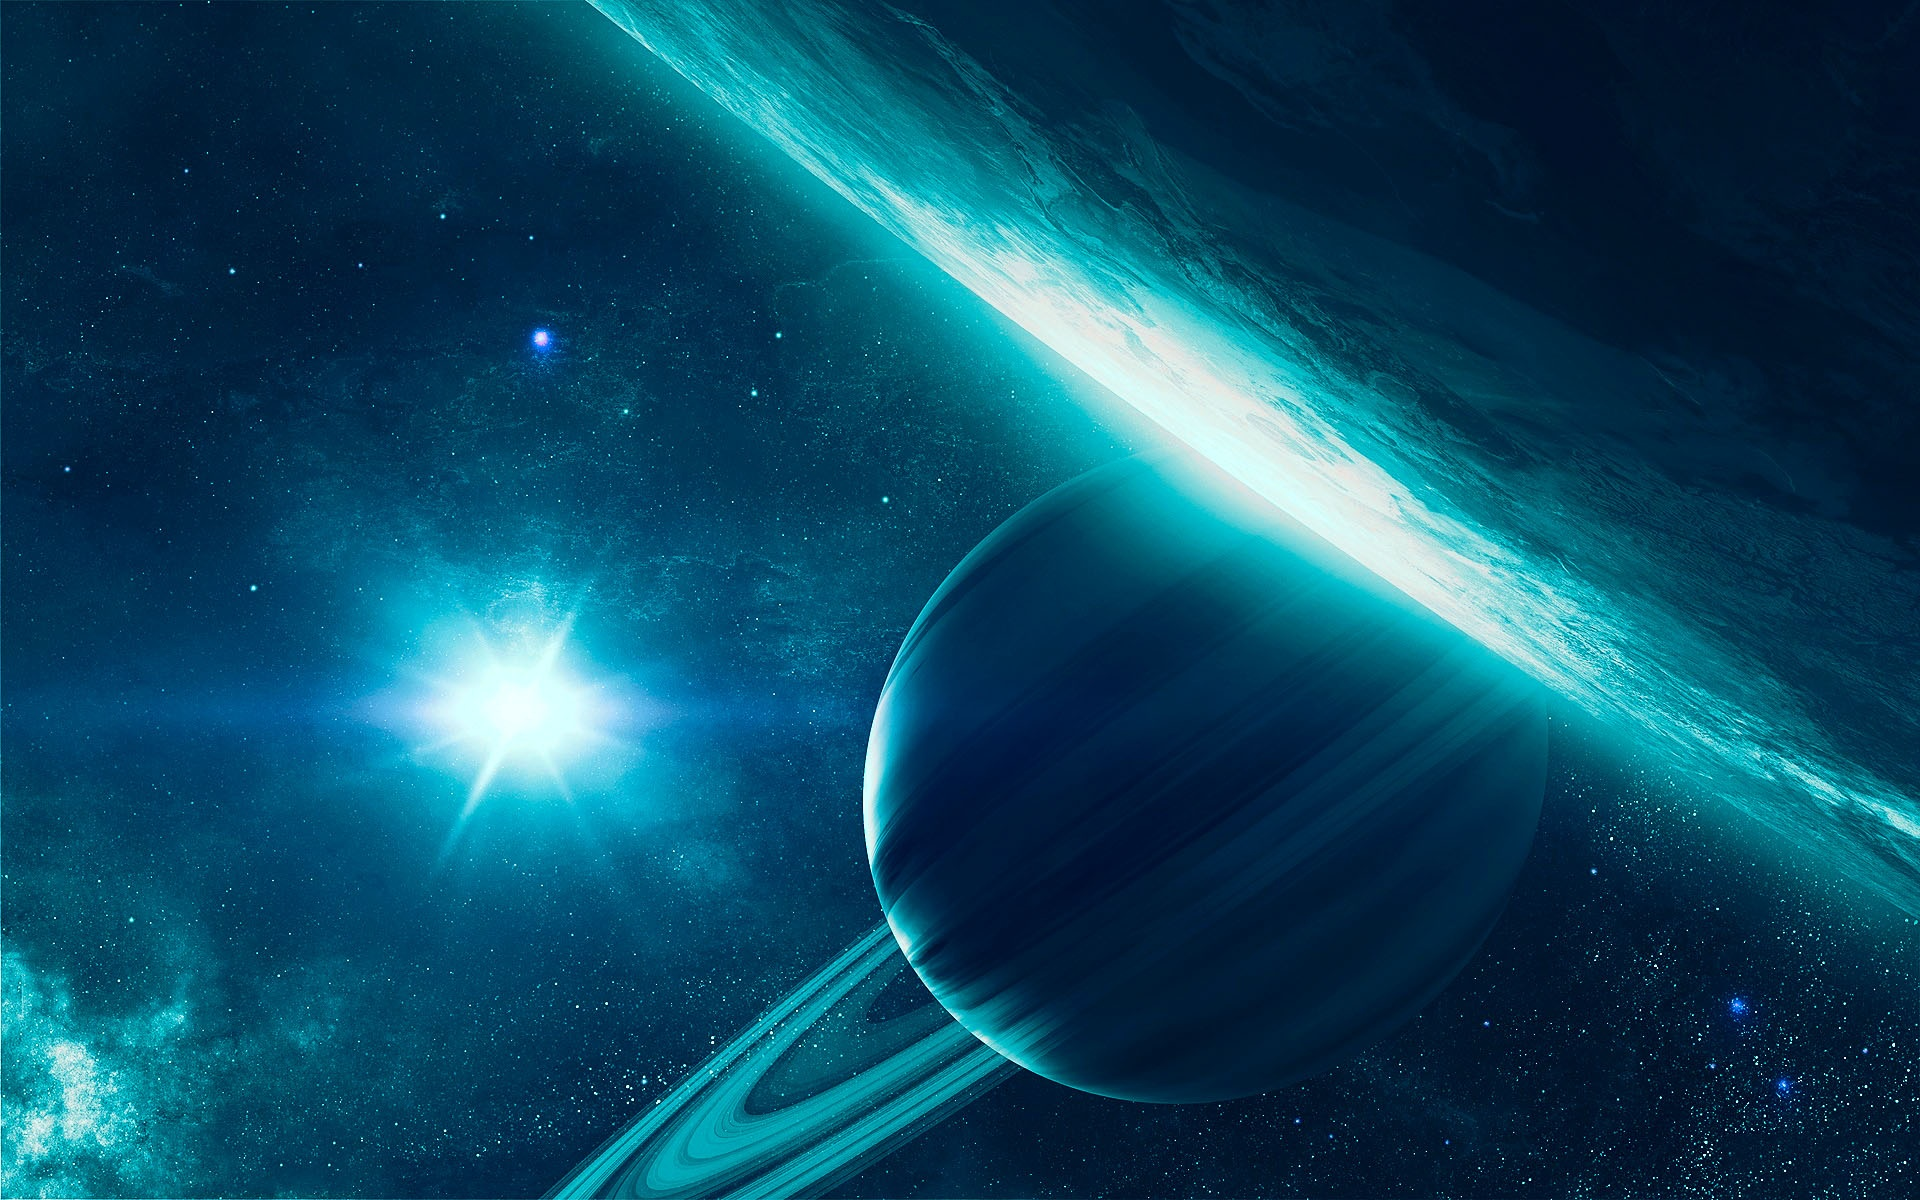 Samsung Galaxy S3 3d Wallpaper Free Download Space Planet Wallpaper 3d And Abstract Wallpaper Better